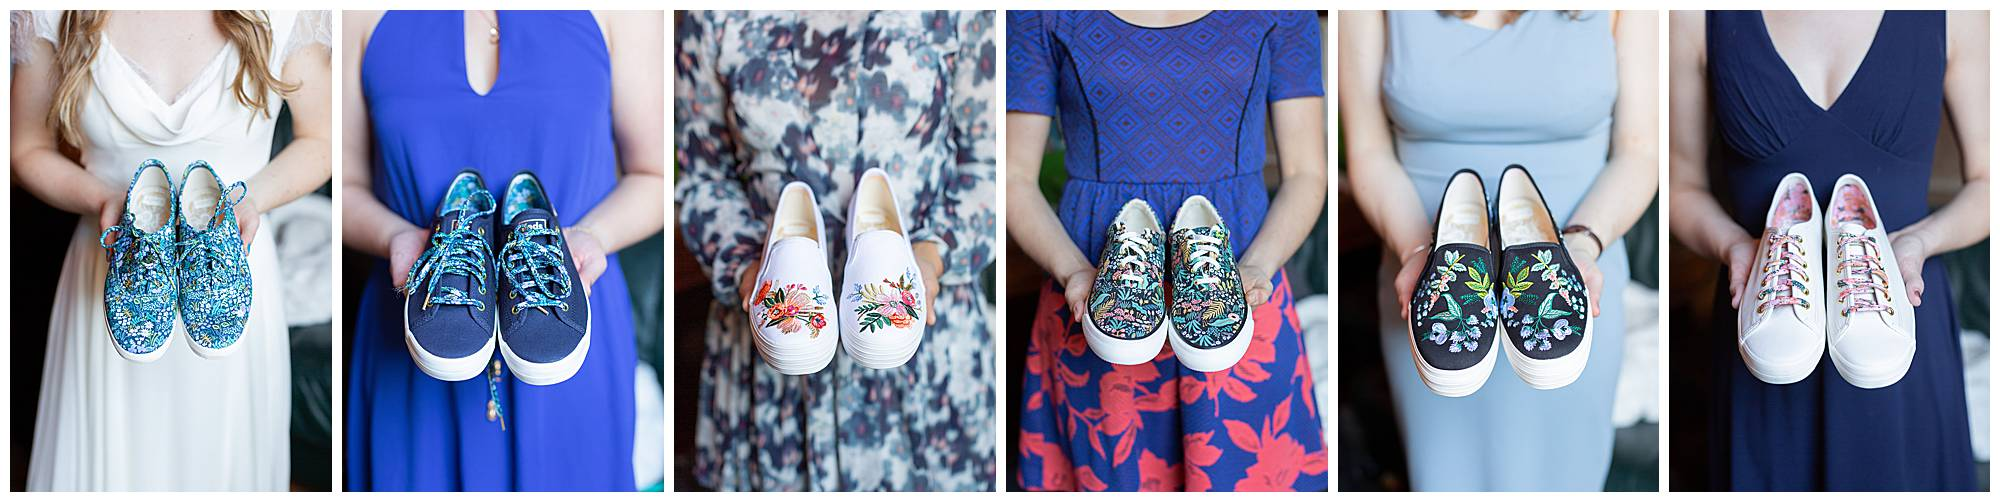 Keds from Rifle Paper Collection gifted to bridesmaids